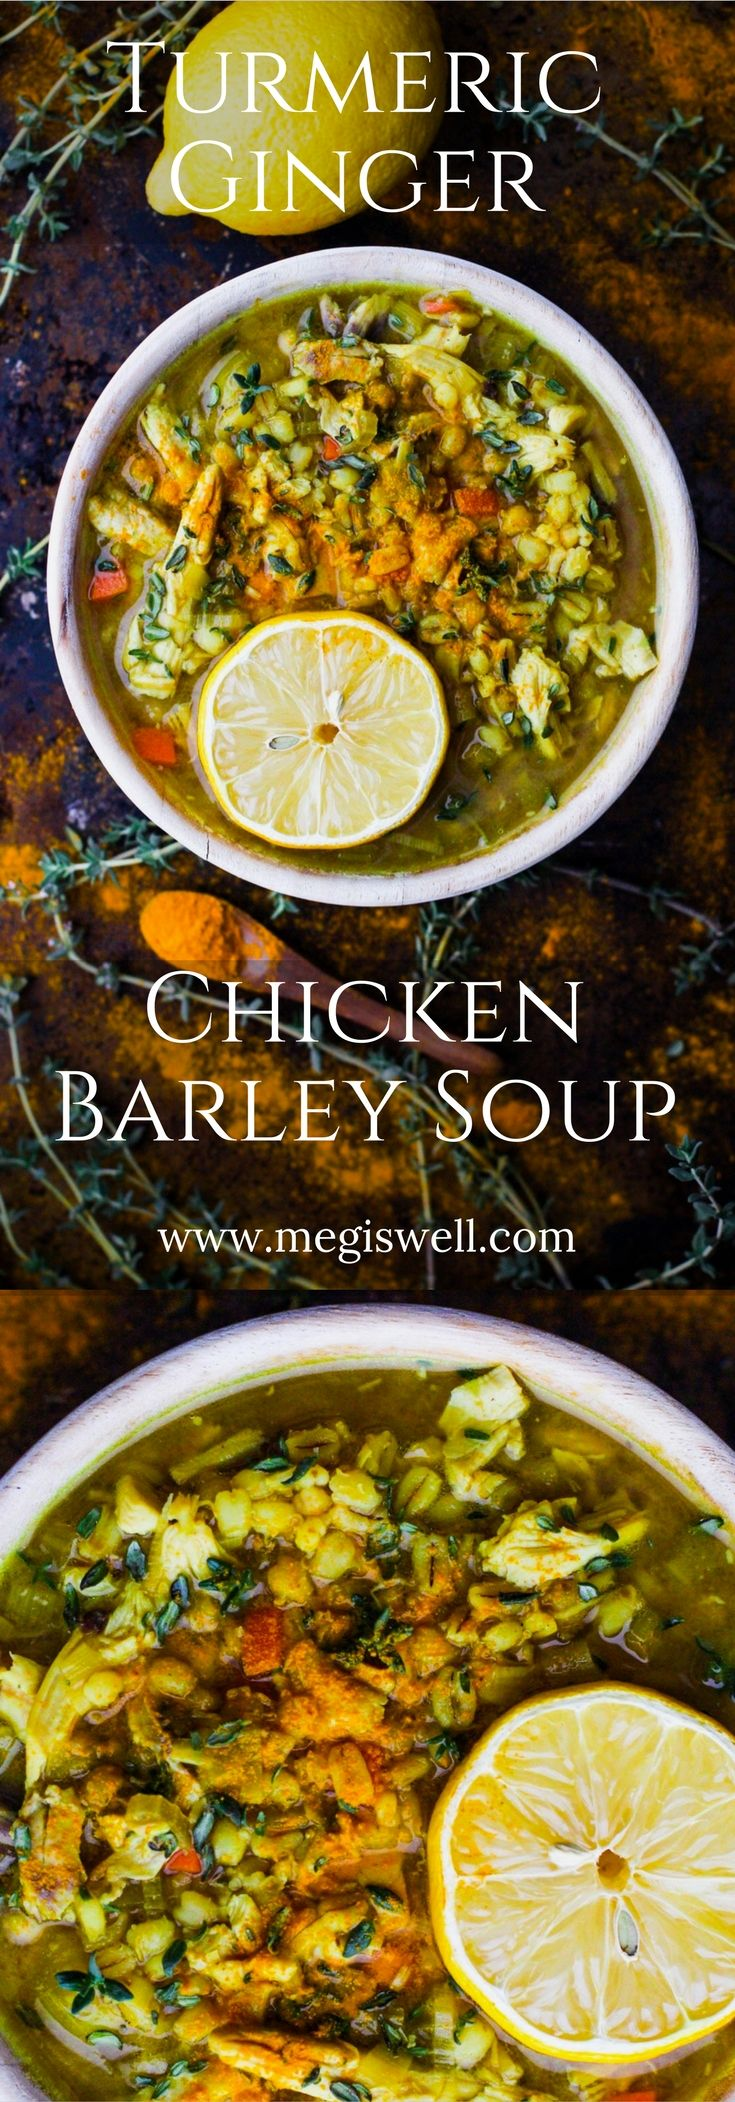 This Turmeric Ginger Chicken Barley Soup is for the sick and weary. Turmeric powder, fresh grated ginger, wholesome chicken broth, chicken, and roasted barley are slow cooked to cold fighting delicious perfection. | www.megiswell.com